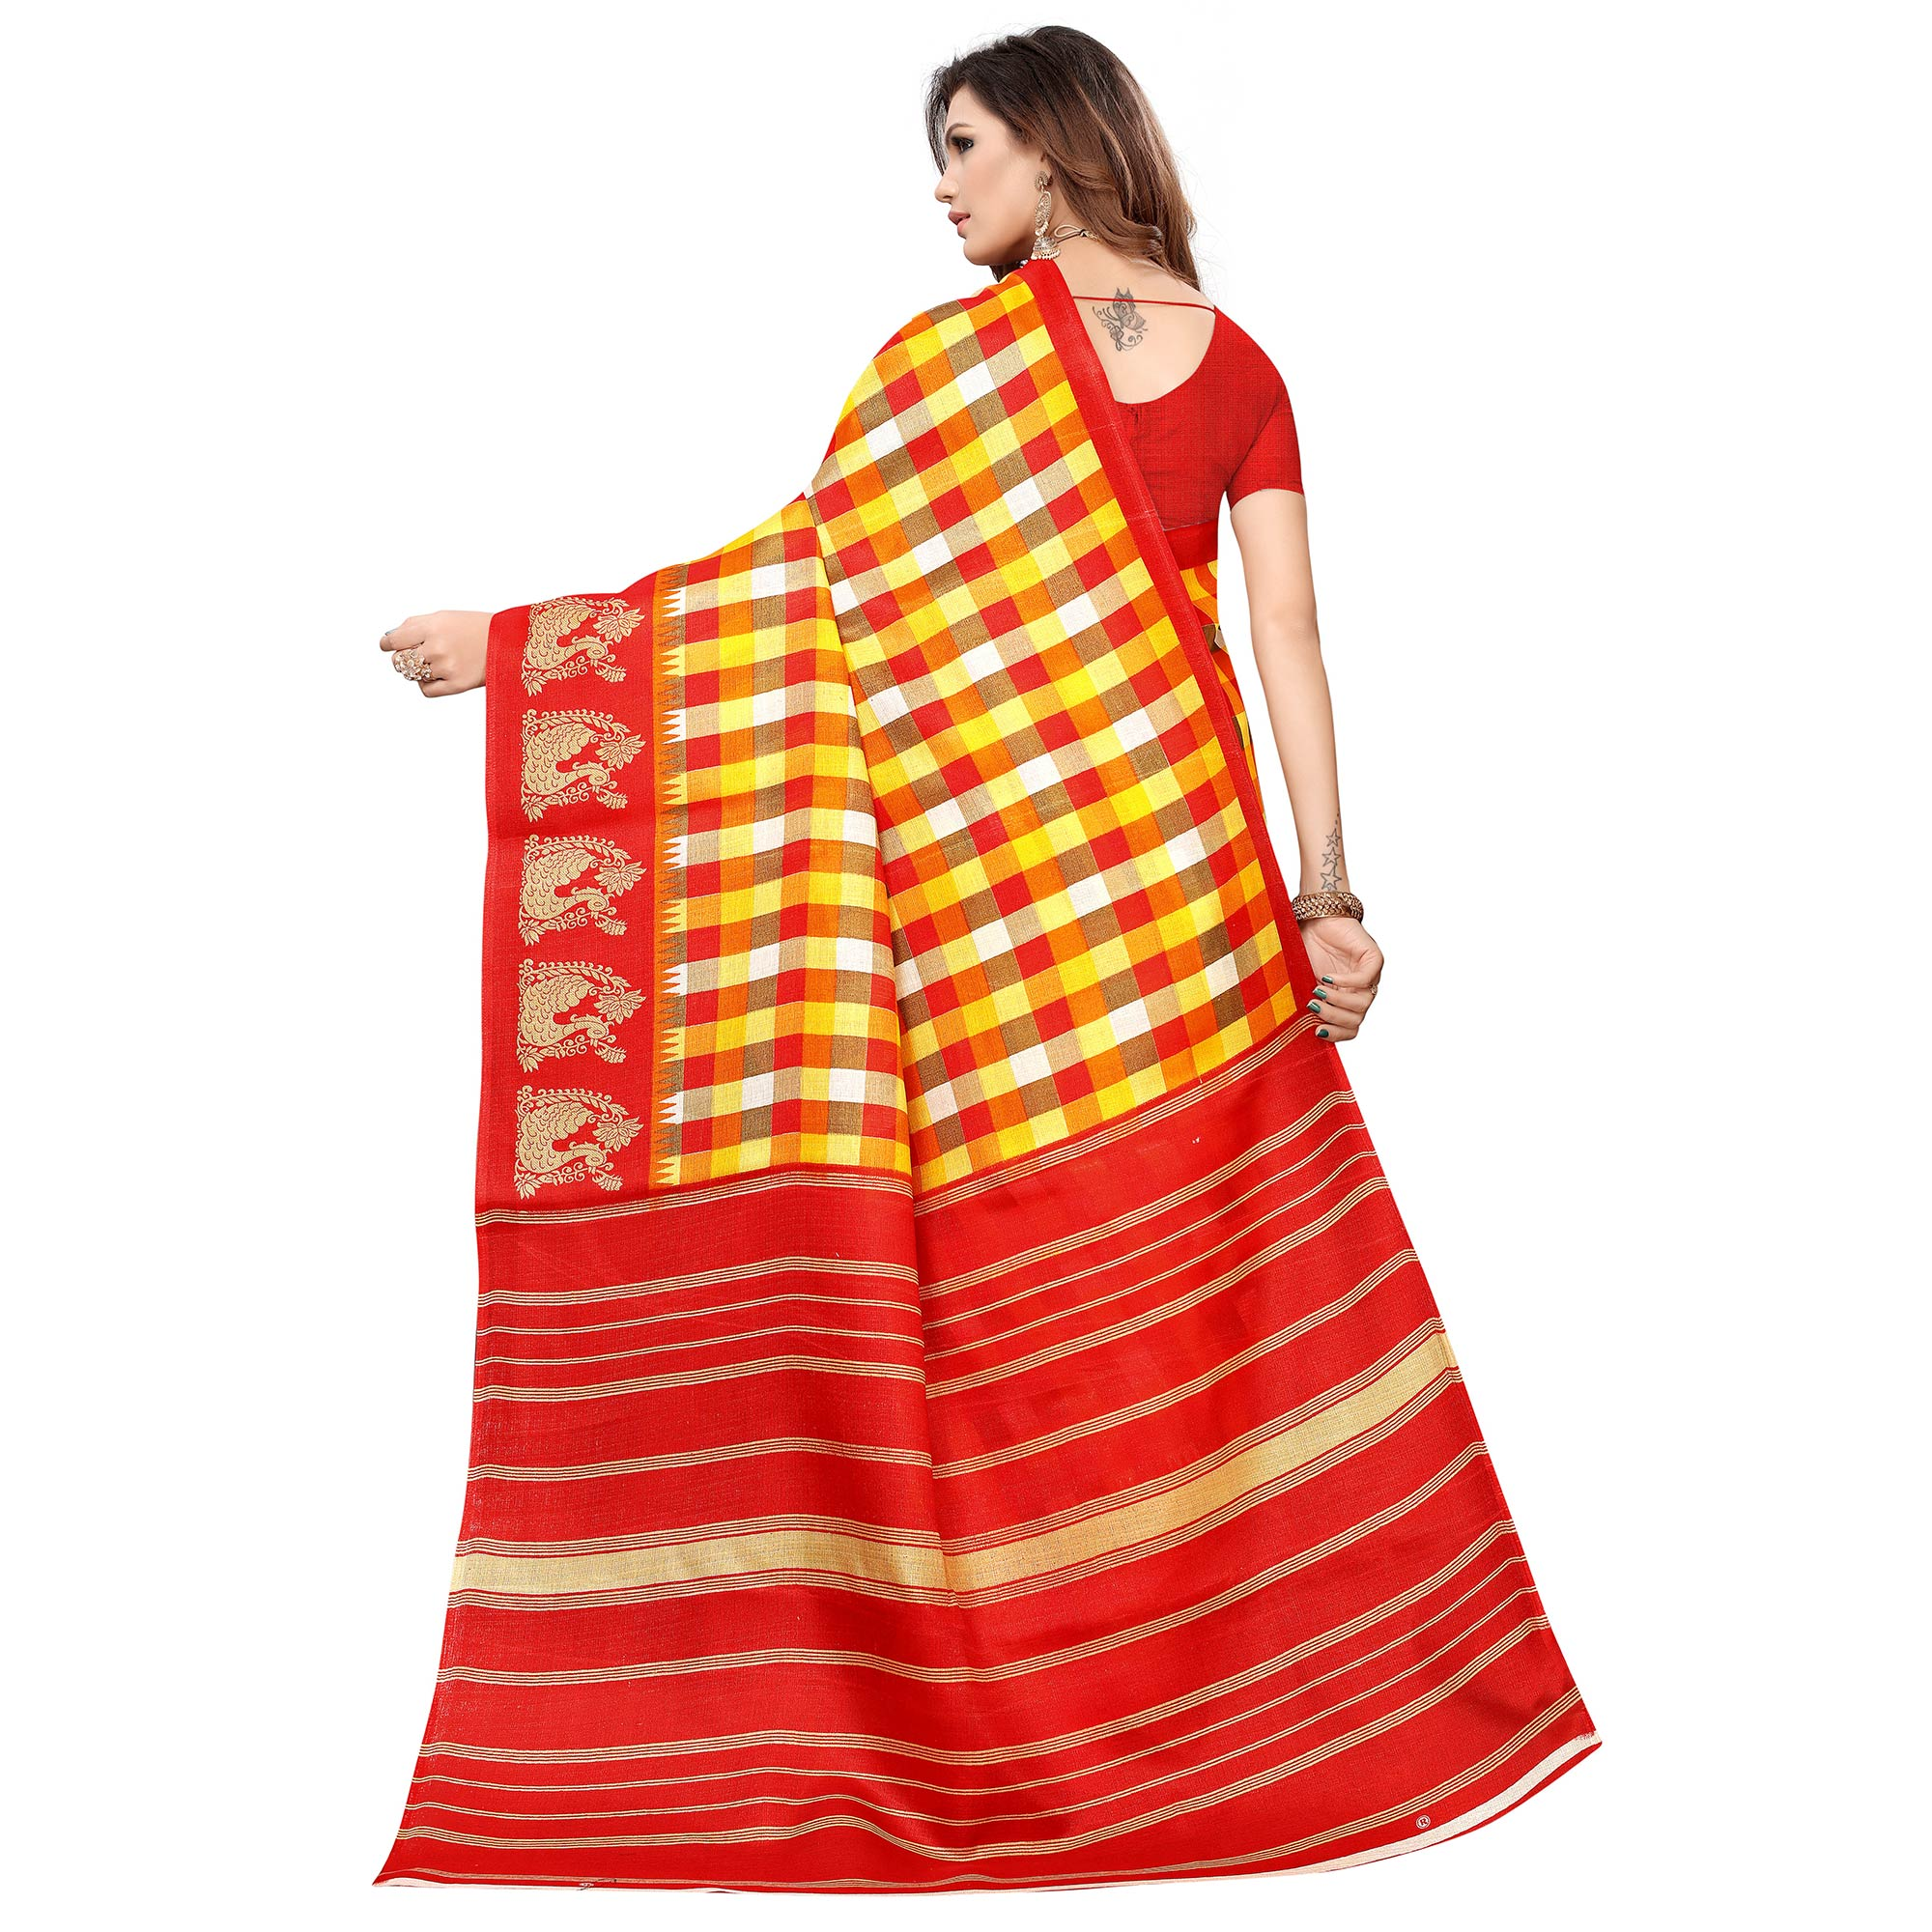 Mesmerising Yellow-Red Colored Casual Printed Khadi Silk Saree